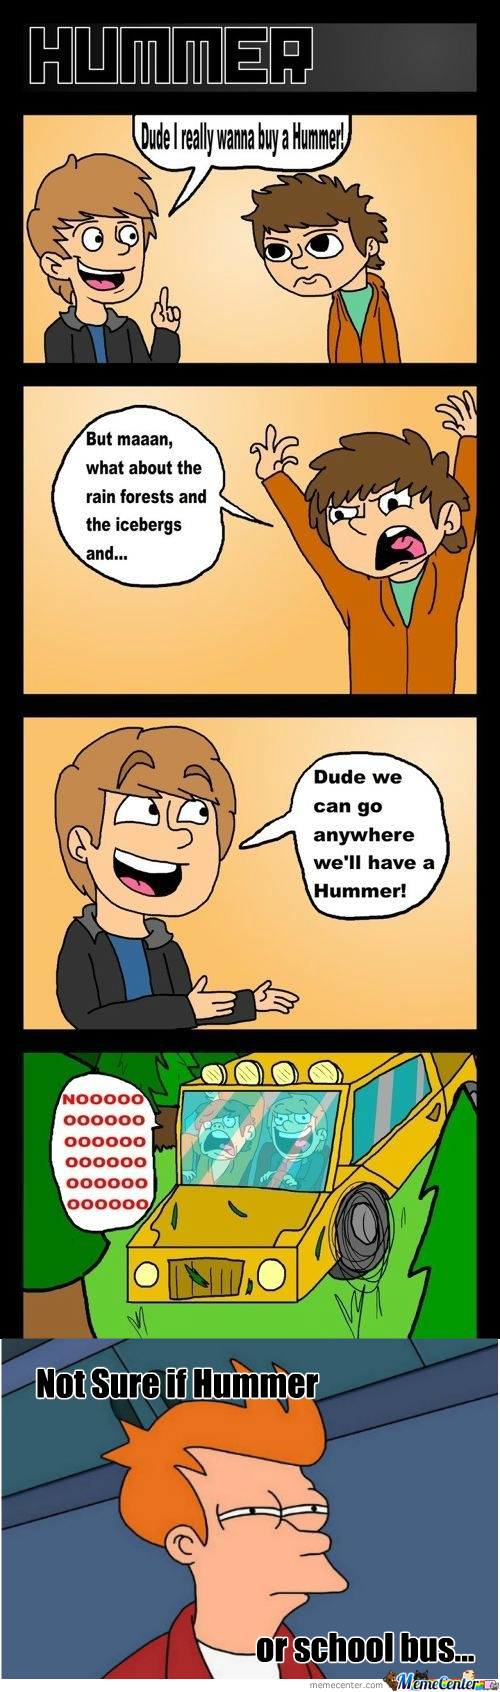 [RMX] Hummers